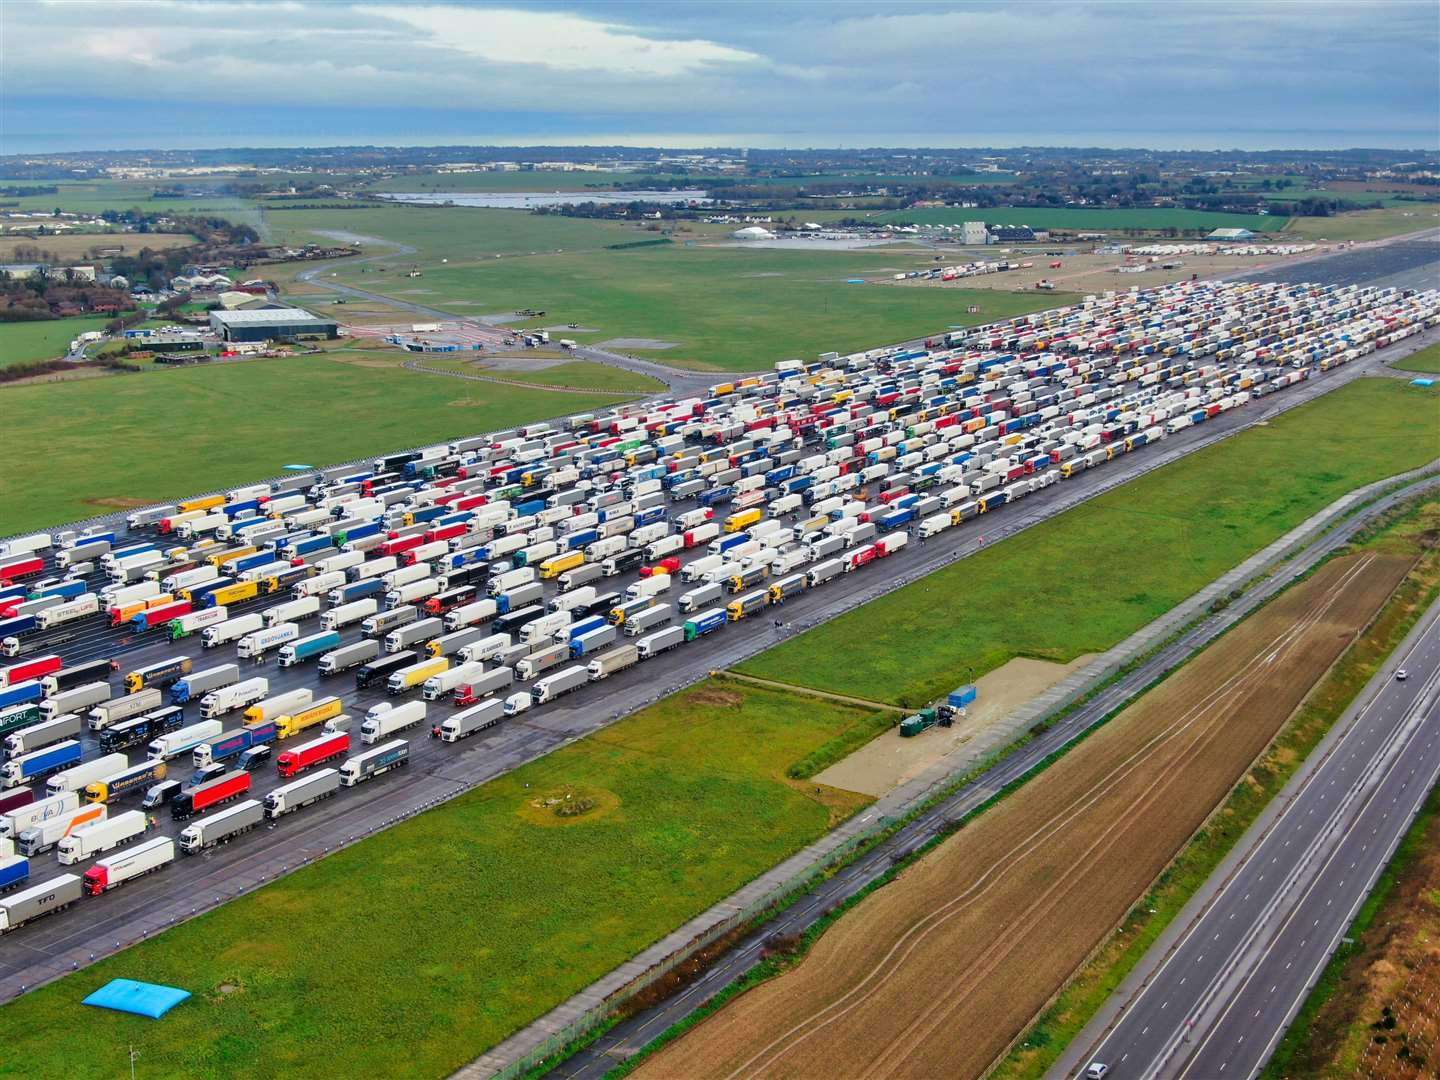 Any traffic mitigation plan will have to forgo the use of Manston, as the government's lease ended last month